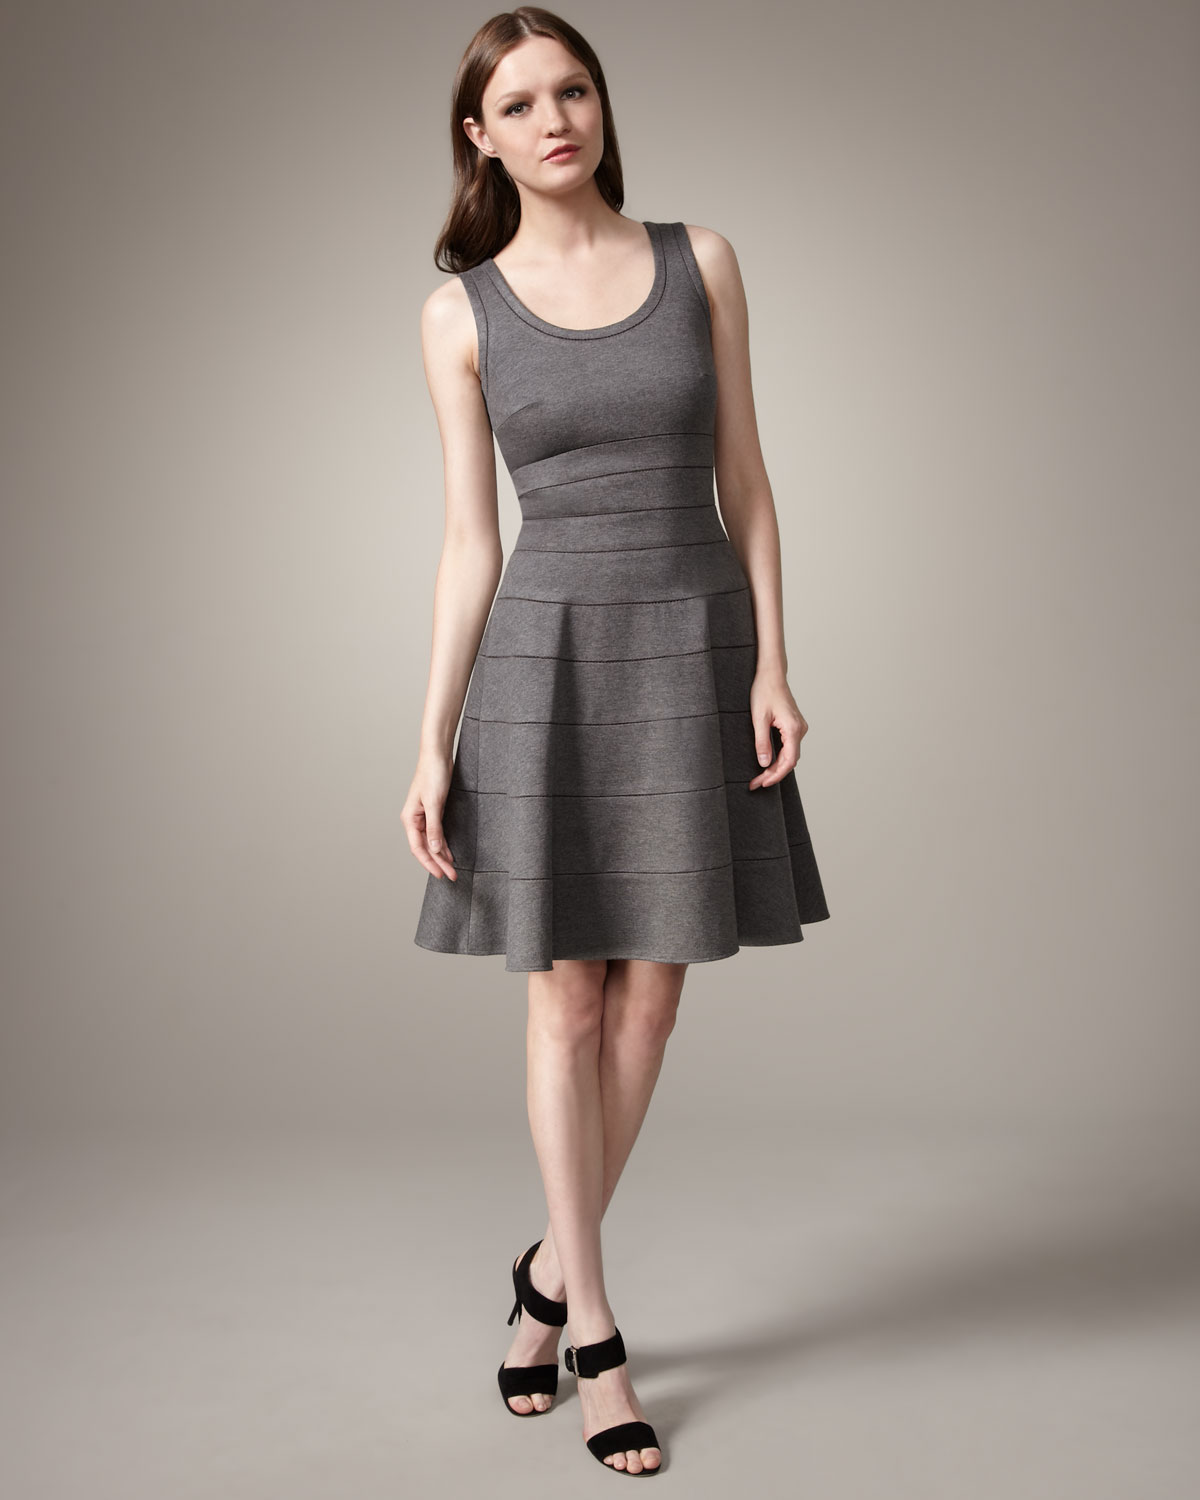 Lyst  Issa Fitandflare Dress in Gray